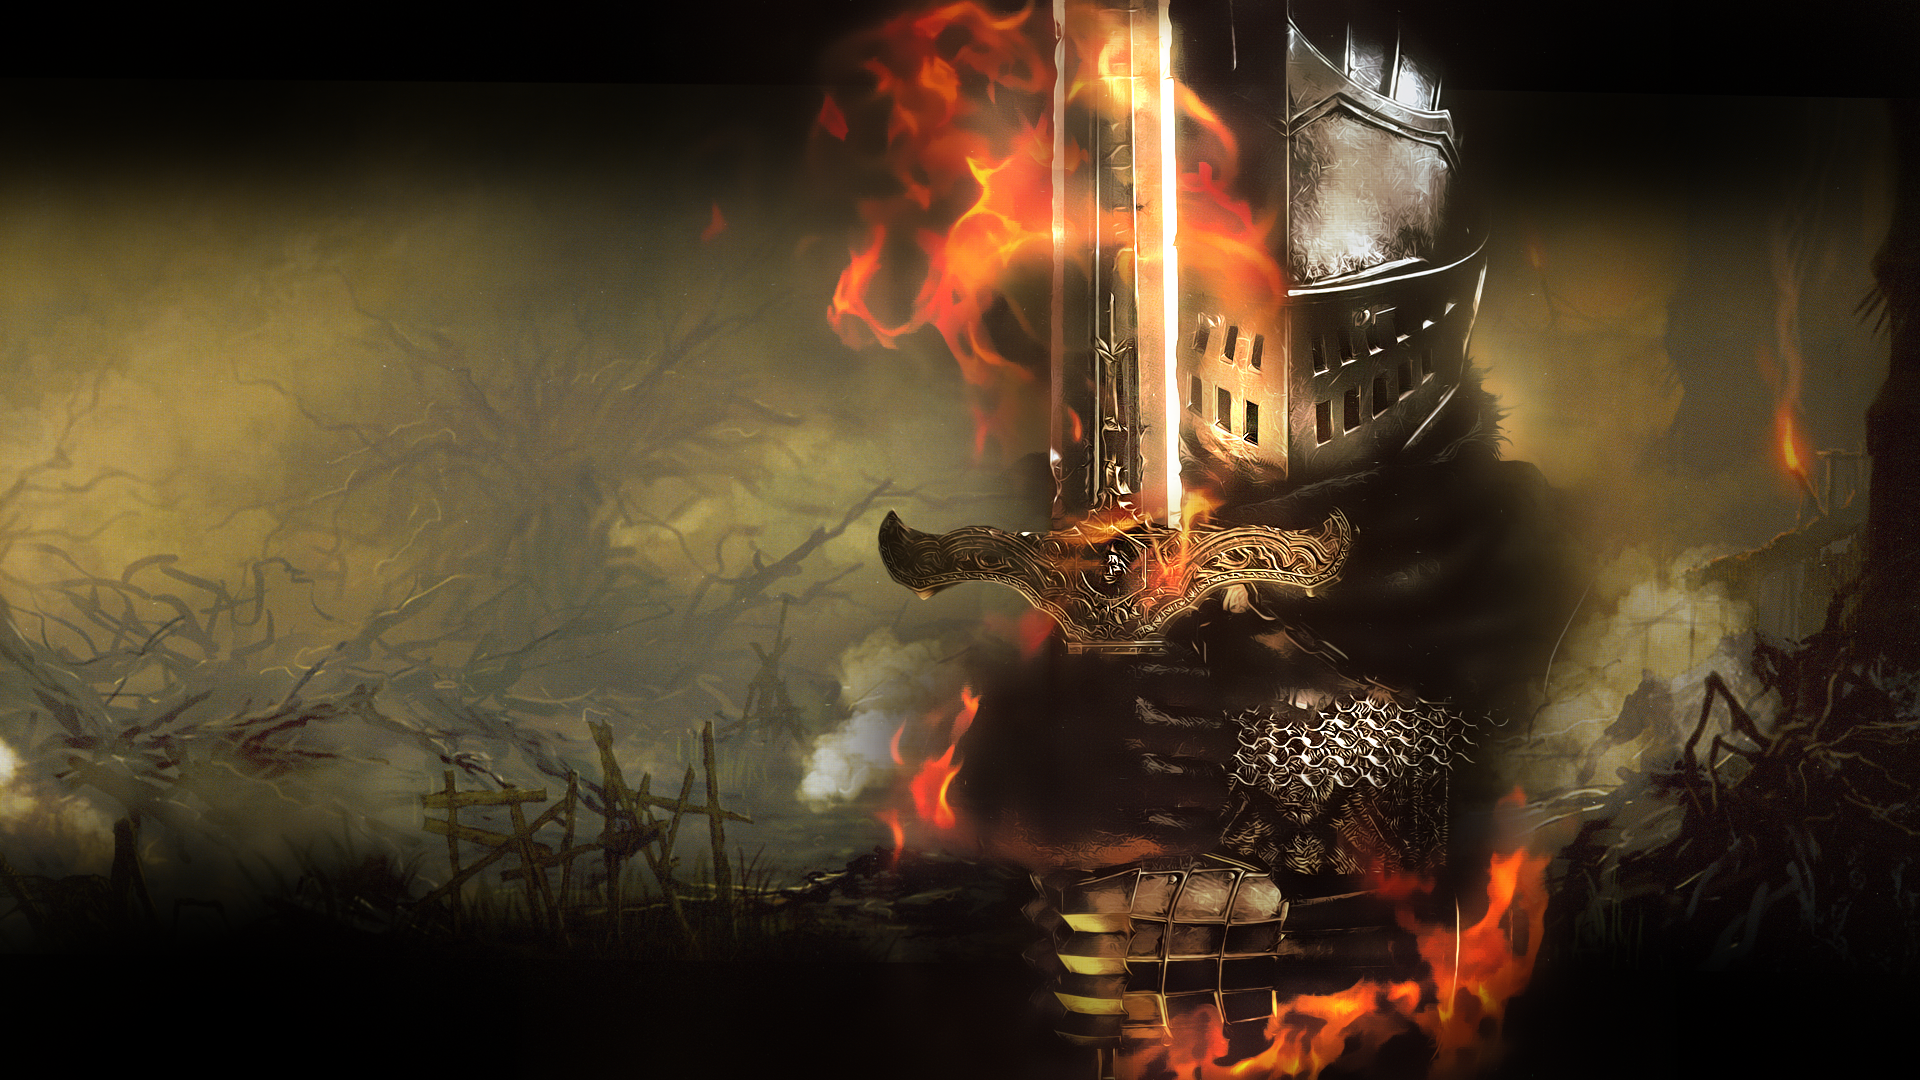 Download Dark Souls Wallpapers Android pictures in high definition or 1920x1080